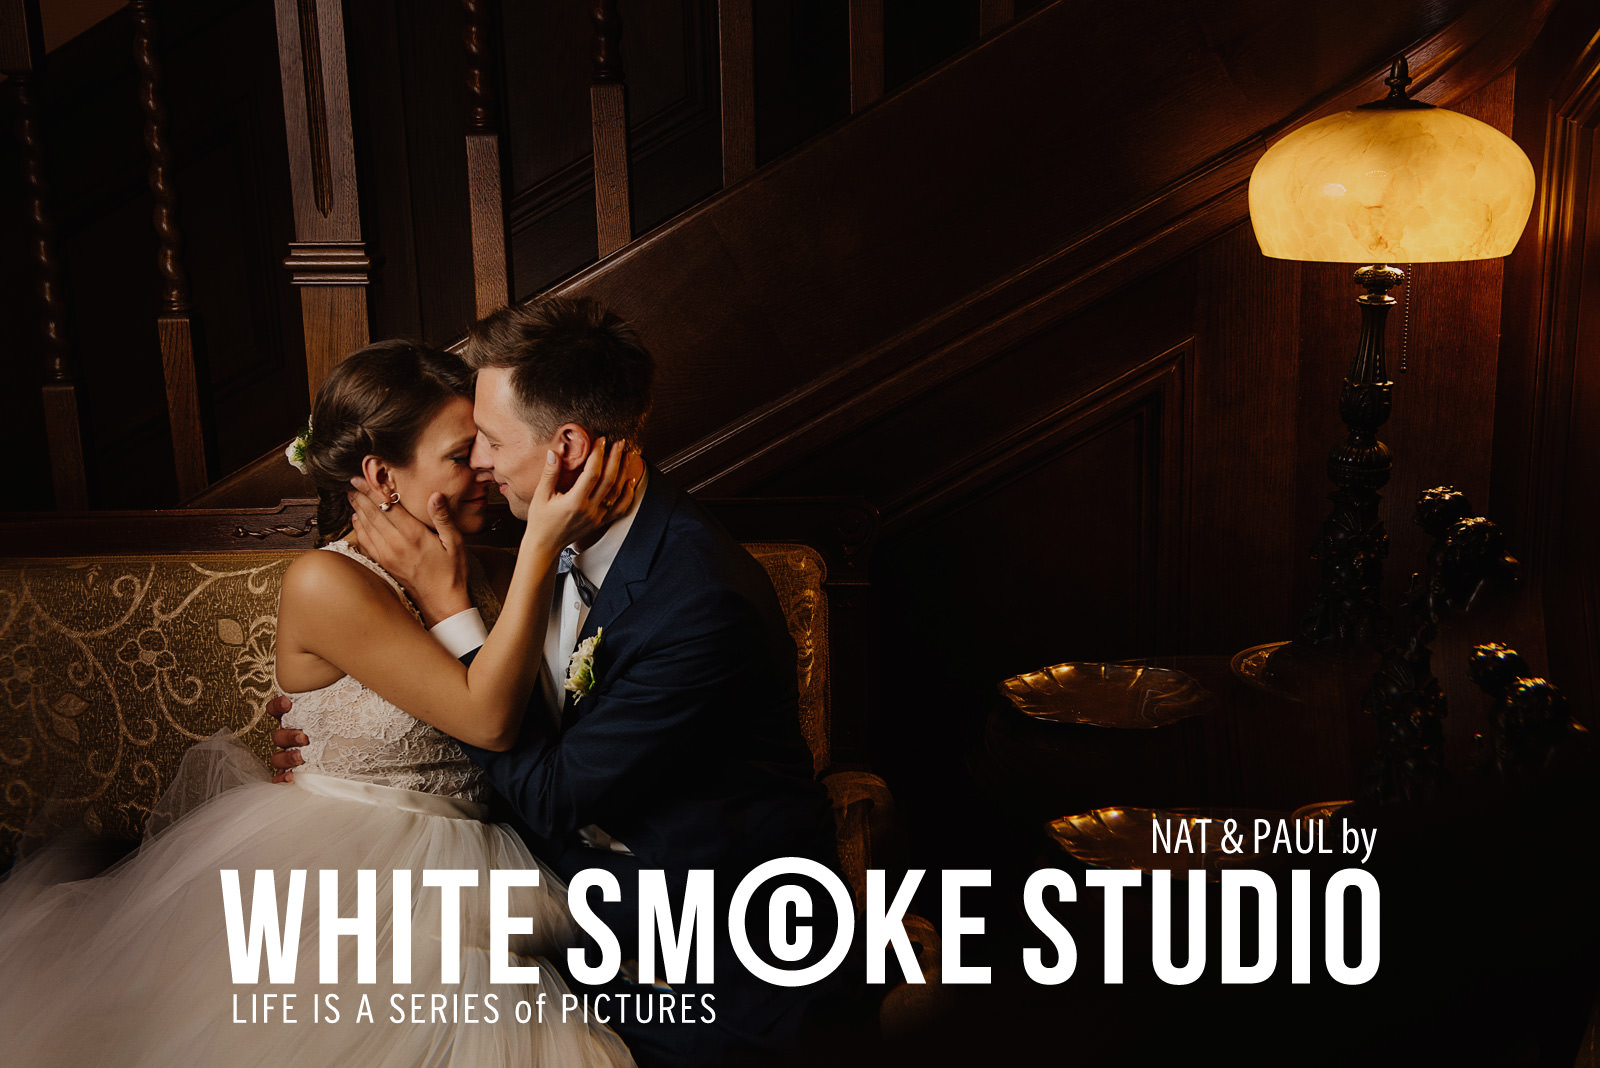 Nat & Paul by WhiteSmoke Studio